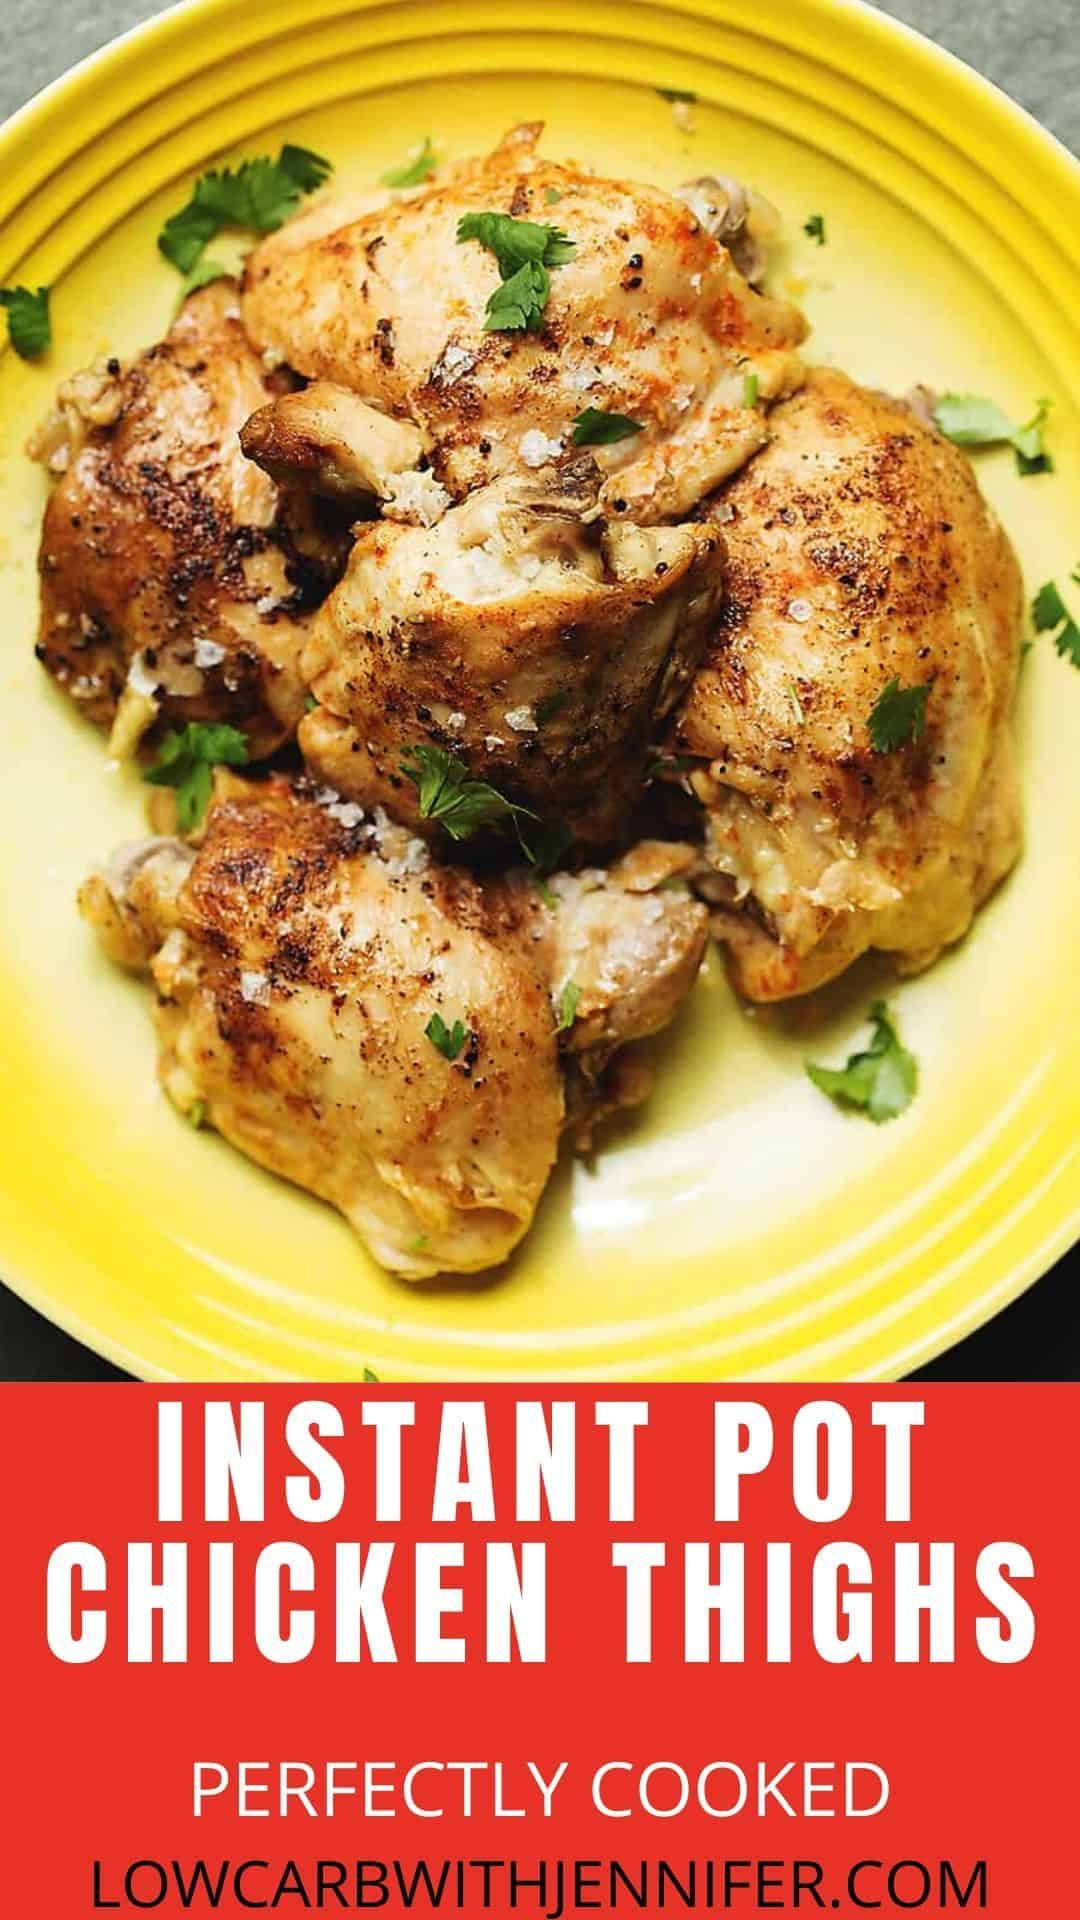 Instant Pot Chicken Thighs Are So Easy To Make Tender And Full Of Flavor I U In 2020 Instant Pot Recipes Chicken Skinless Chicken Recipe Instant Pot Dinner Recipes